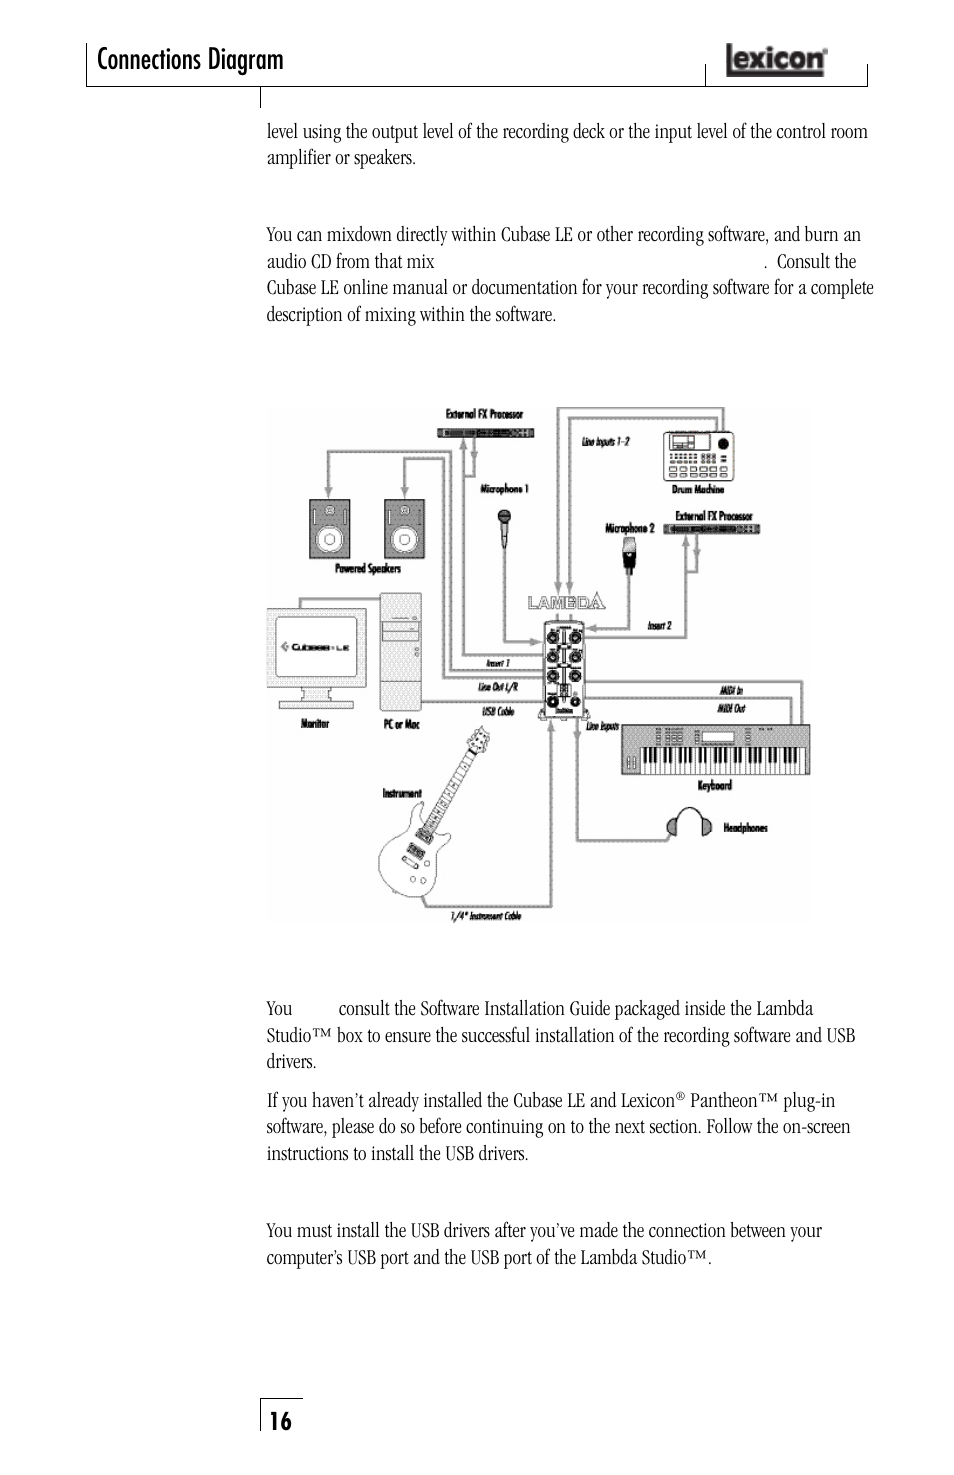 Connections diagram connections diagram windows software setup connections diagram connections diagram windows software setup lexicon lambda desktop recording studio user manual page 16 36 ccuart Choice Image